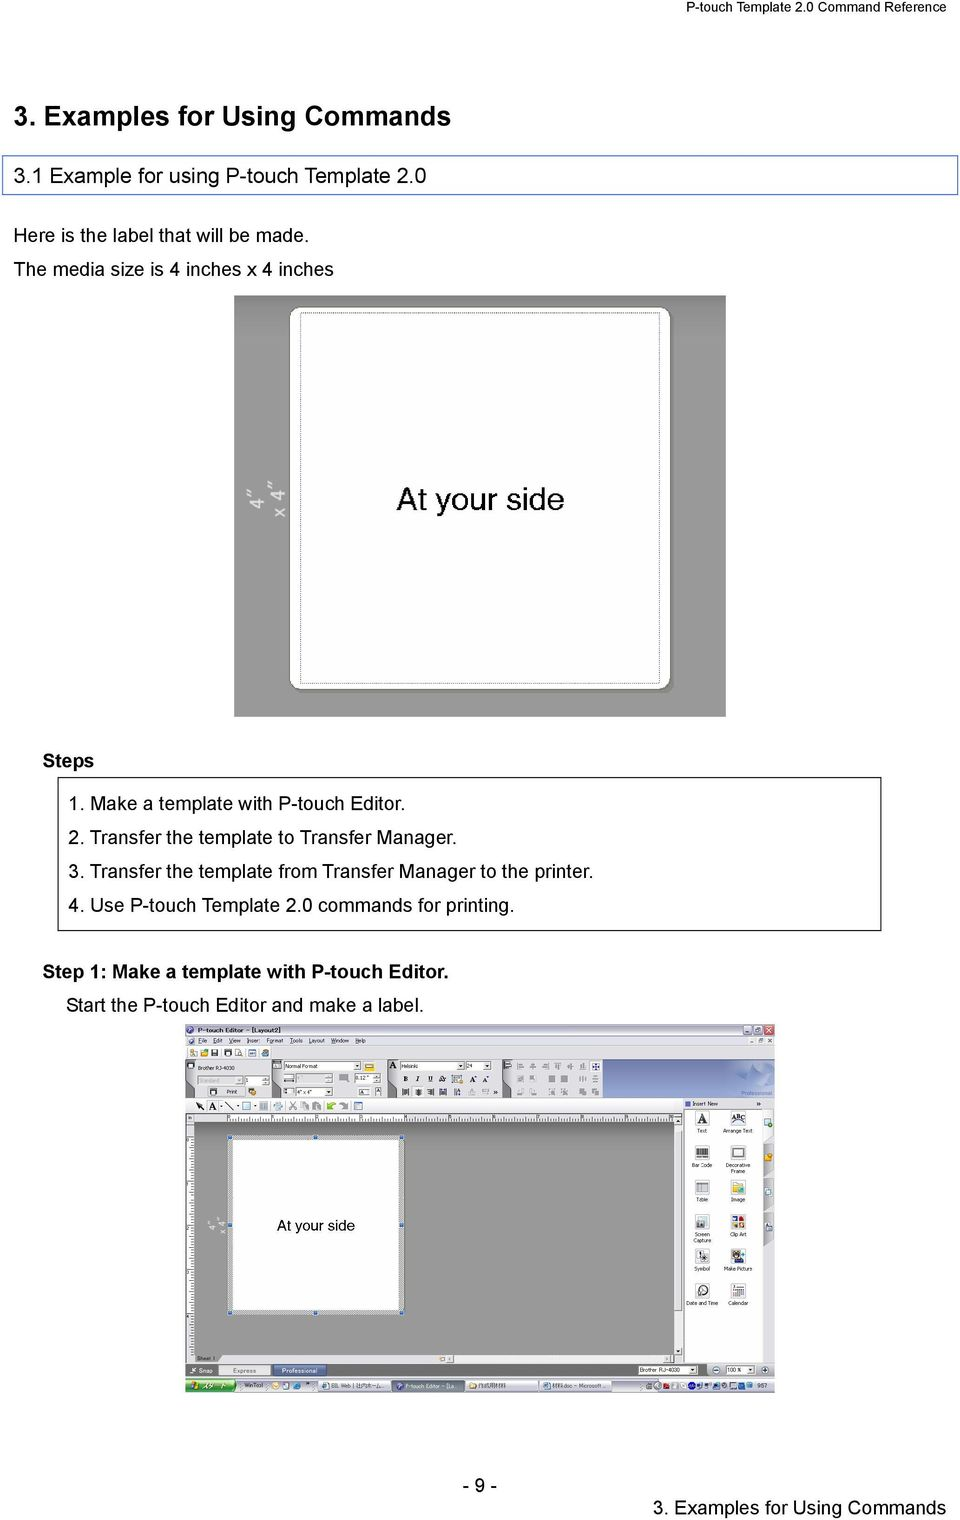 Transfer the template to Transfer Manager. 3. Transfer the template from Transfer Manager to the printer. 4.